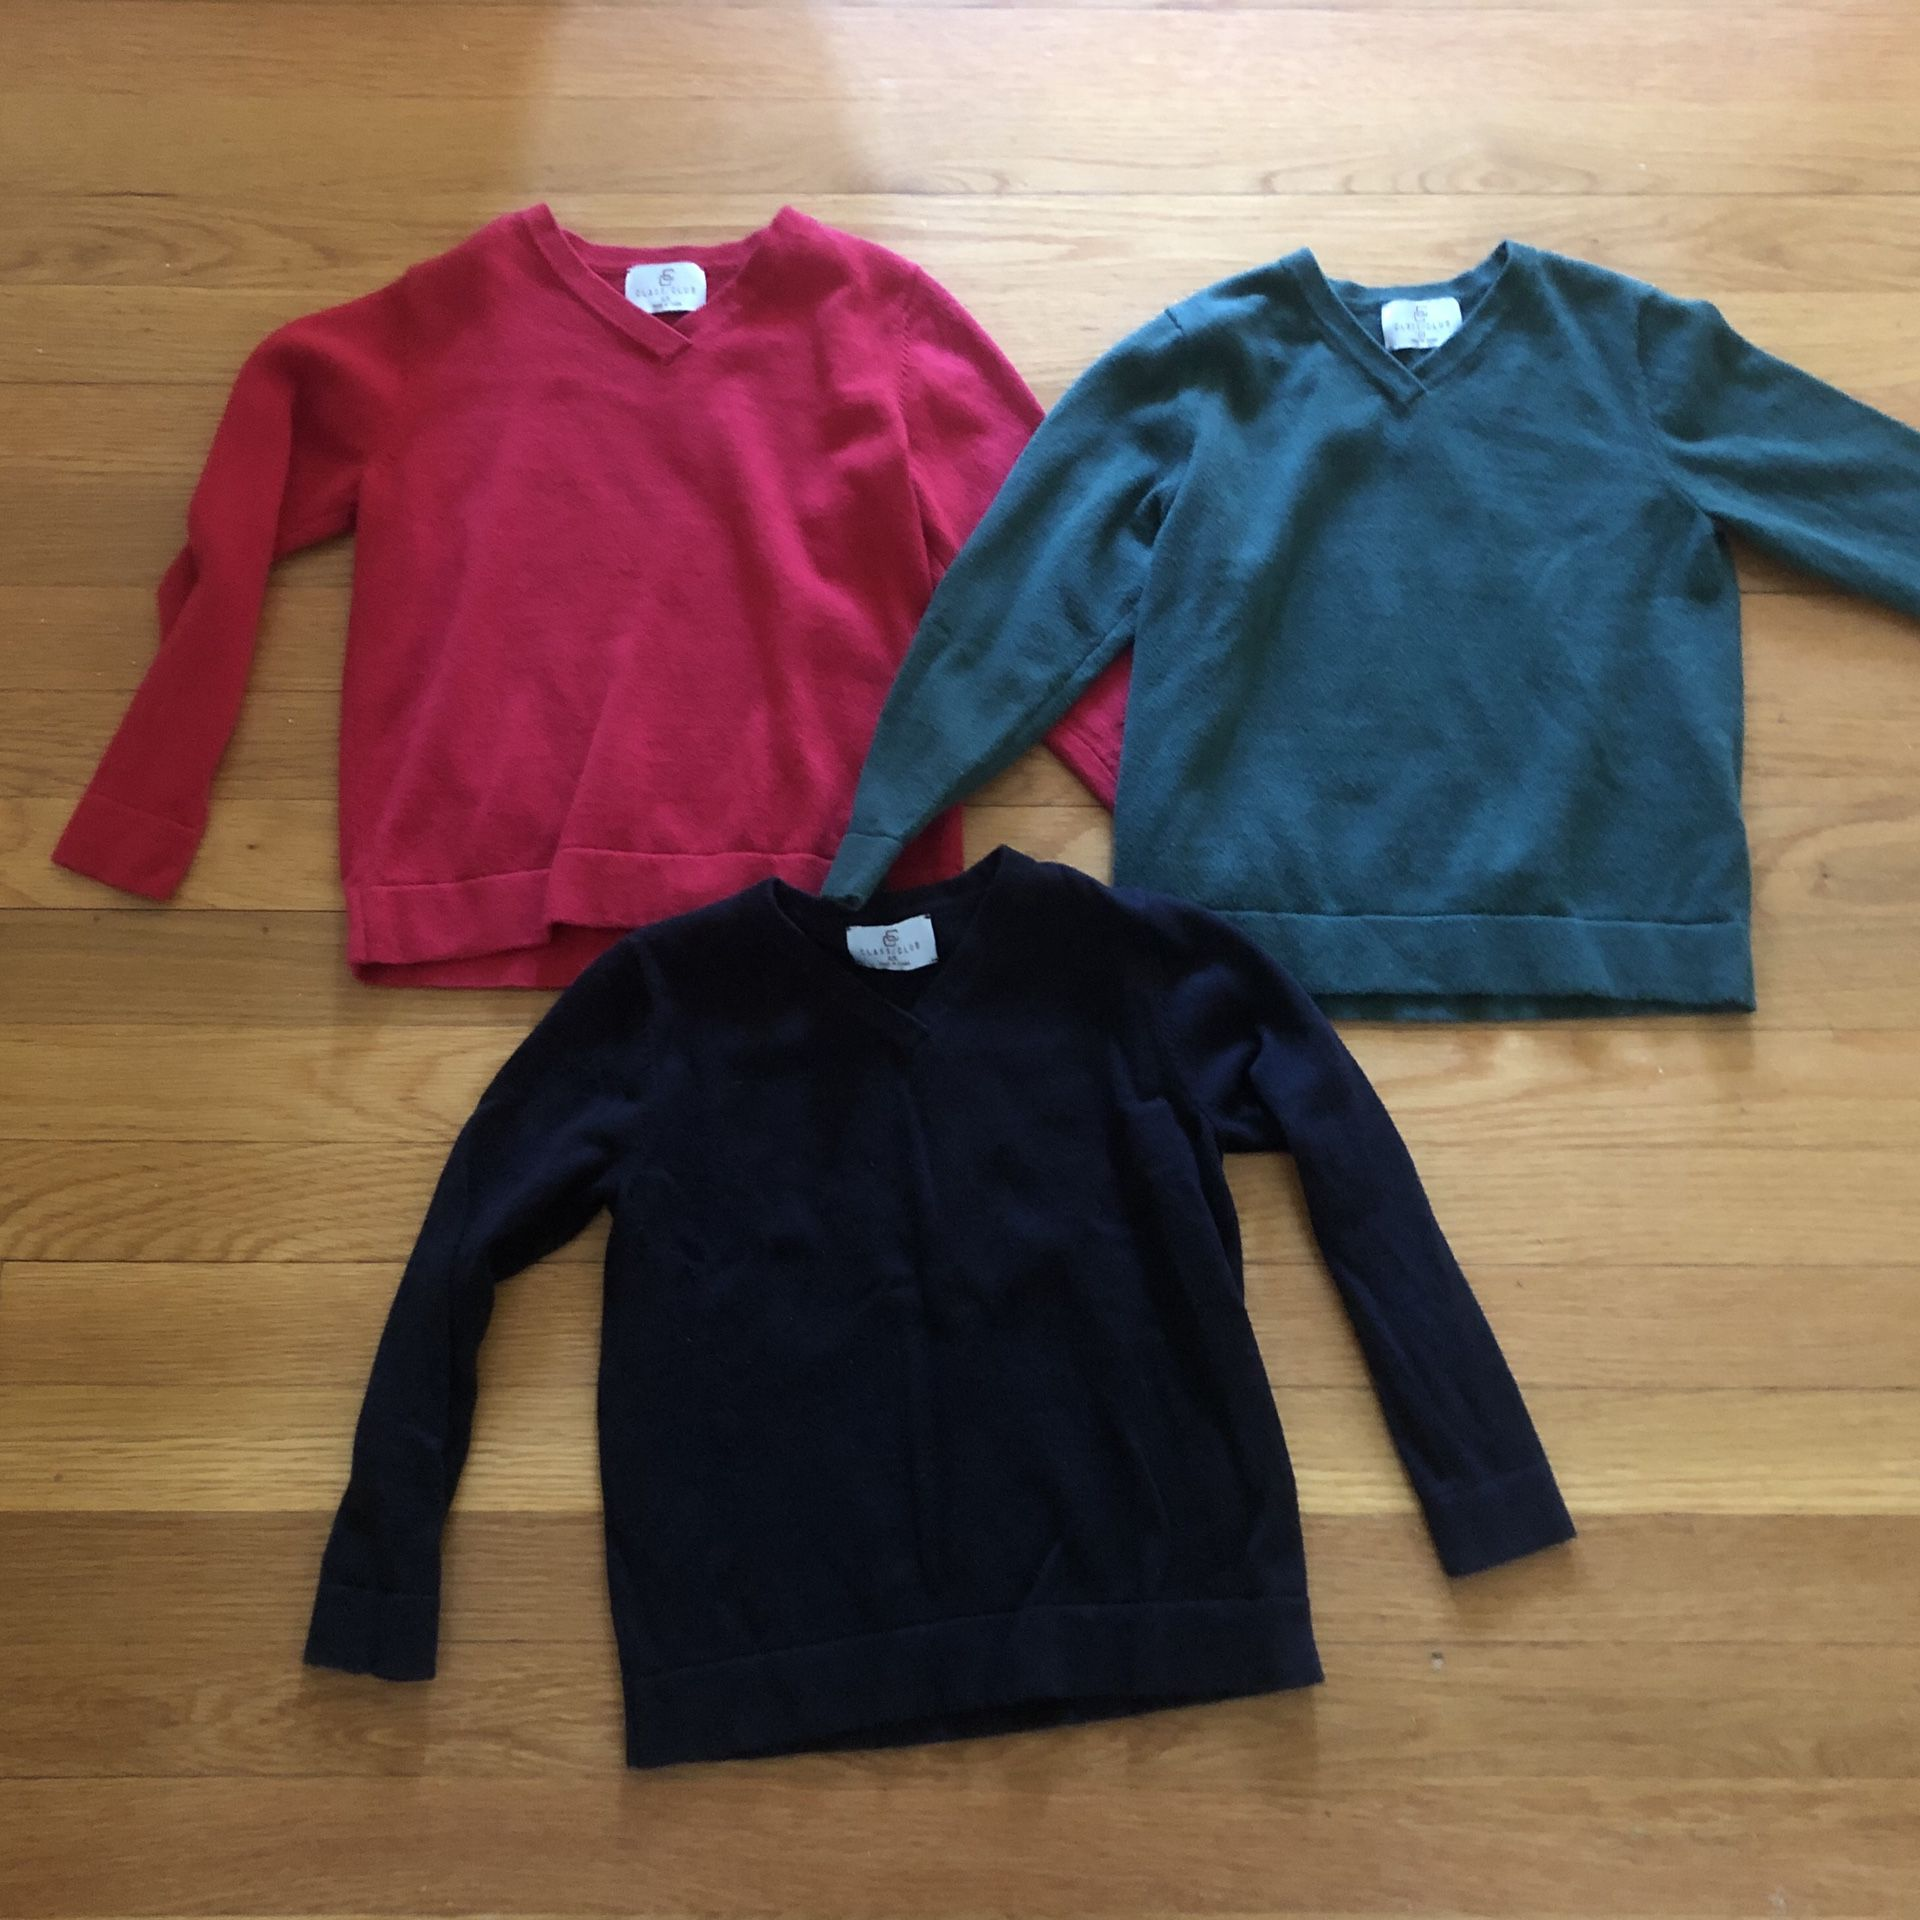 4/5 and 2/3 sweaters